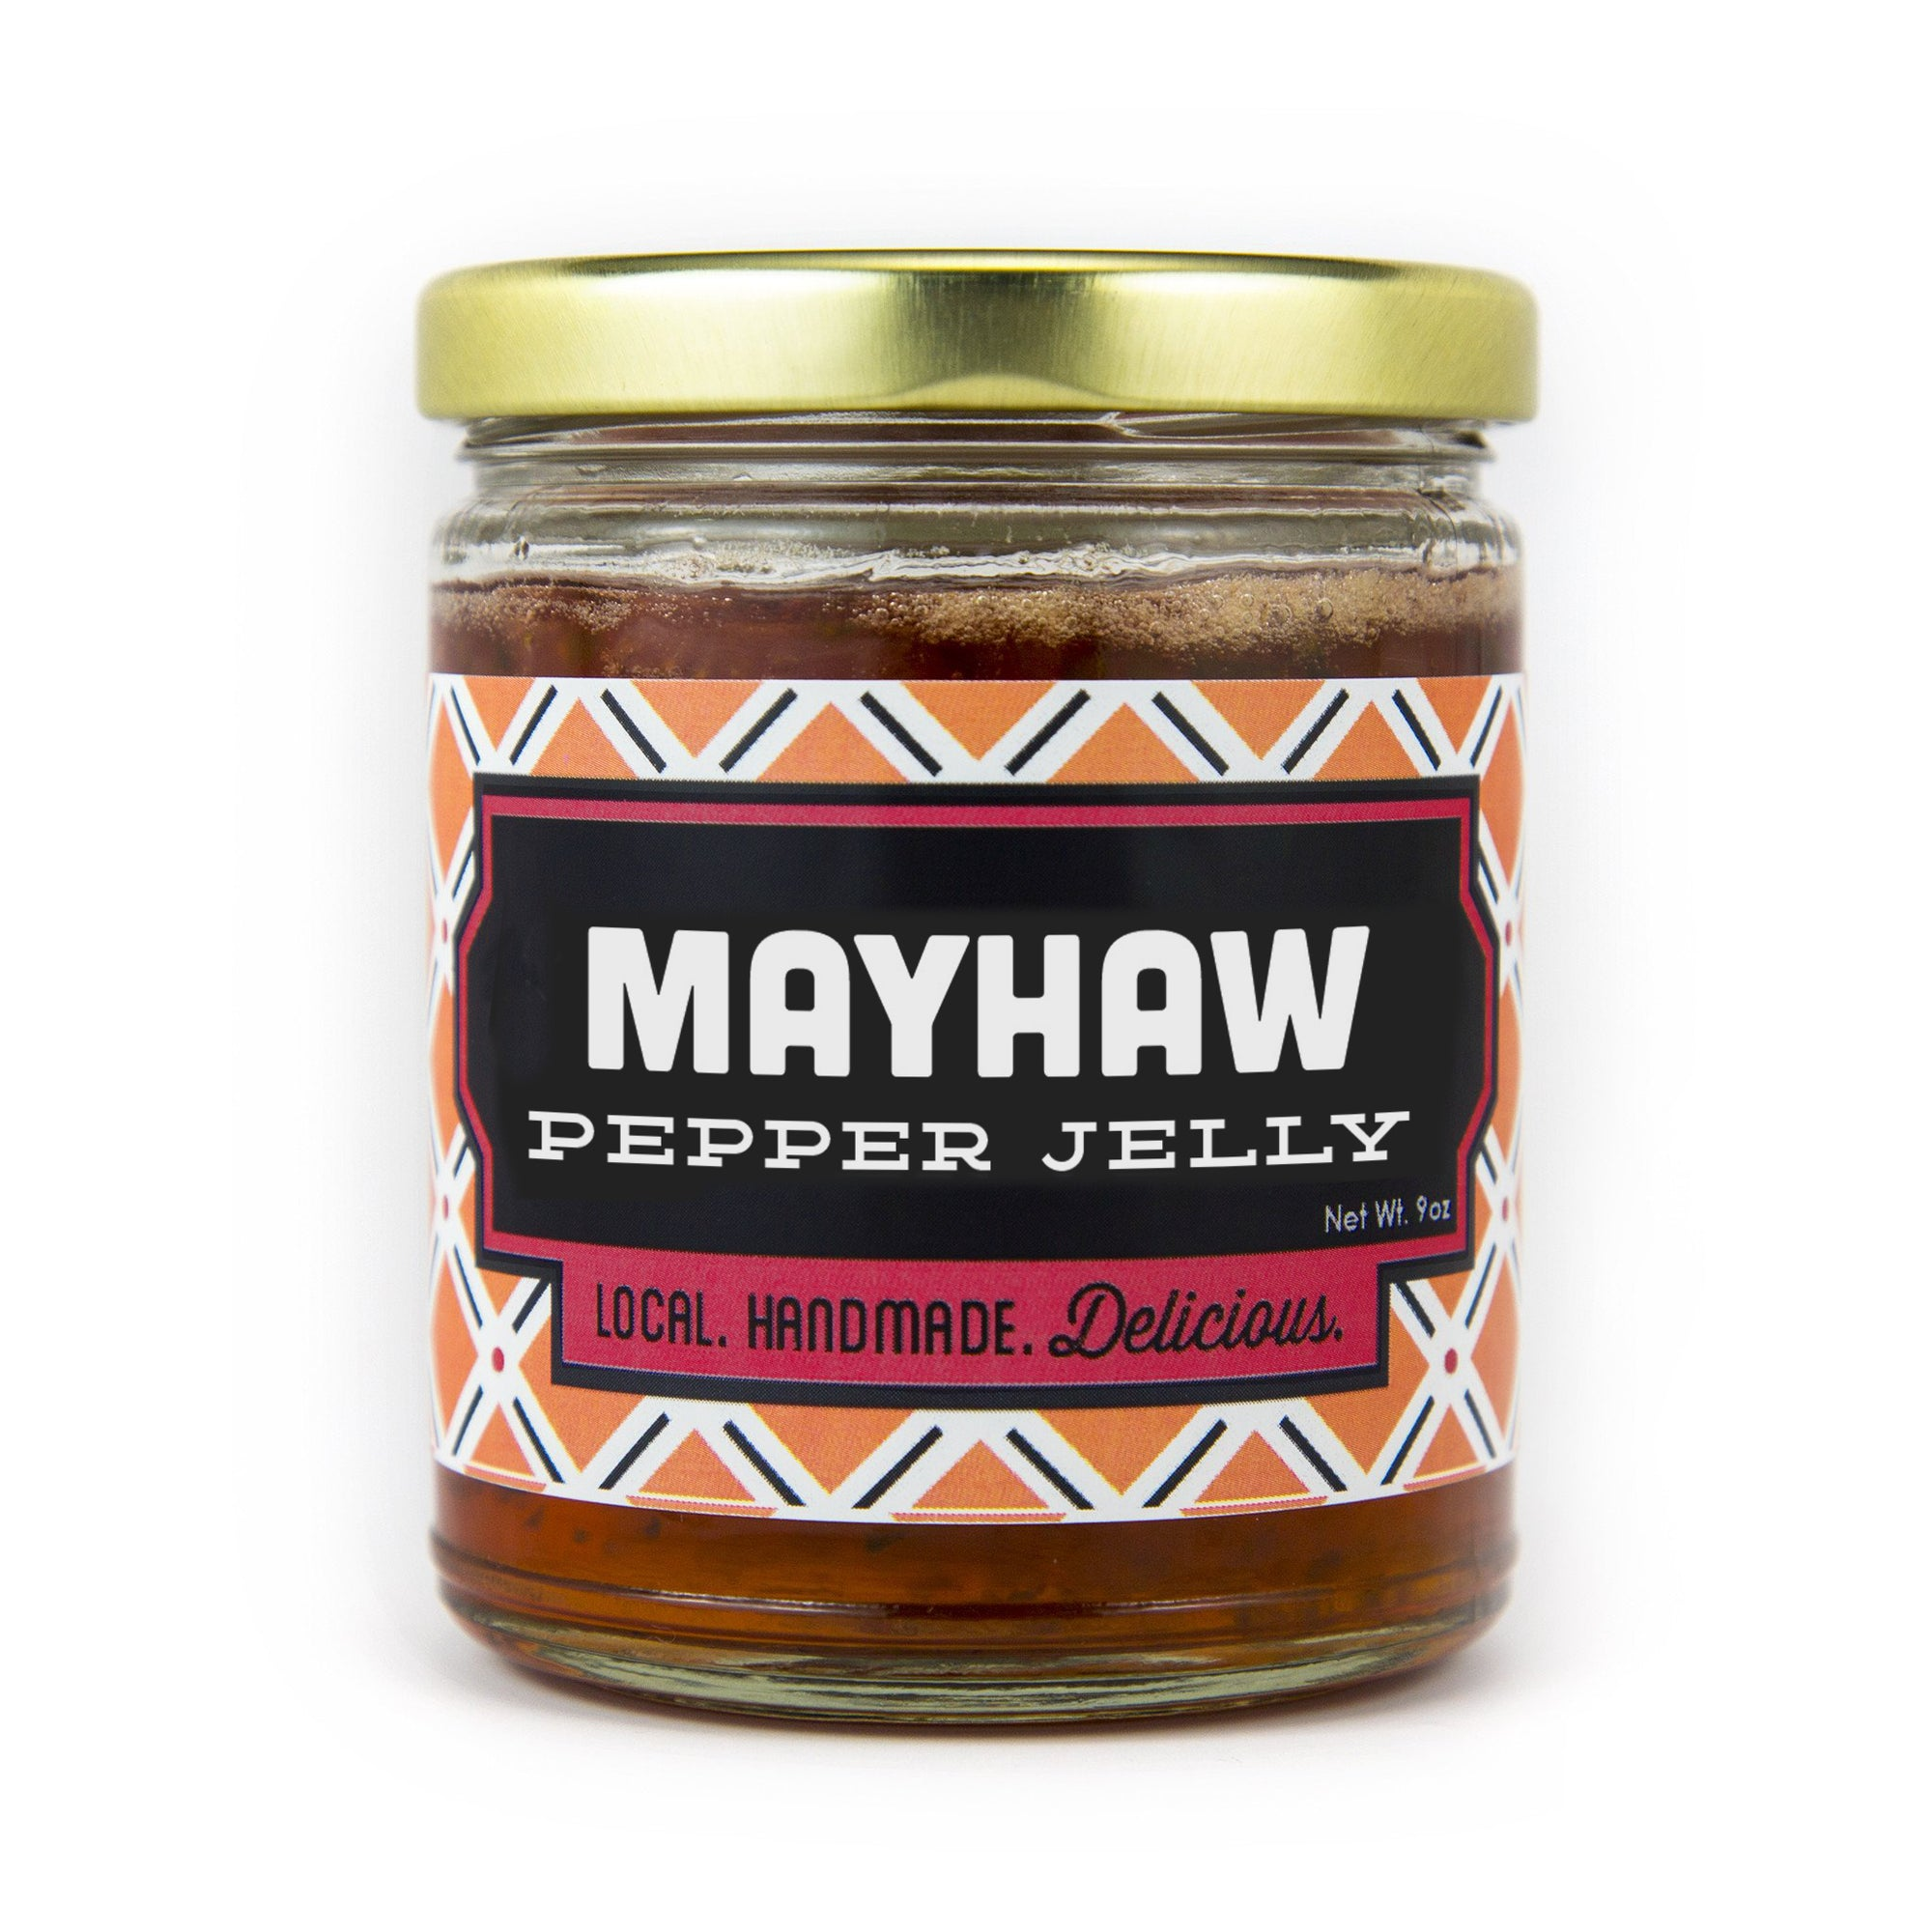 Louisiana Mayhaw Pepper Jelly - Louisiana Products - Red Stick Spice Company